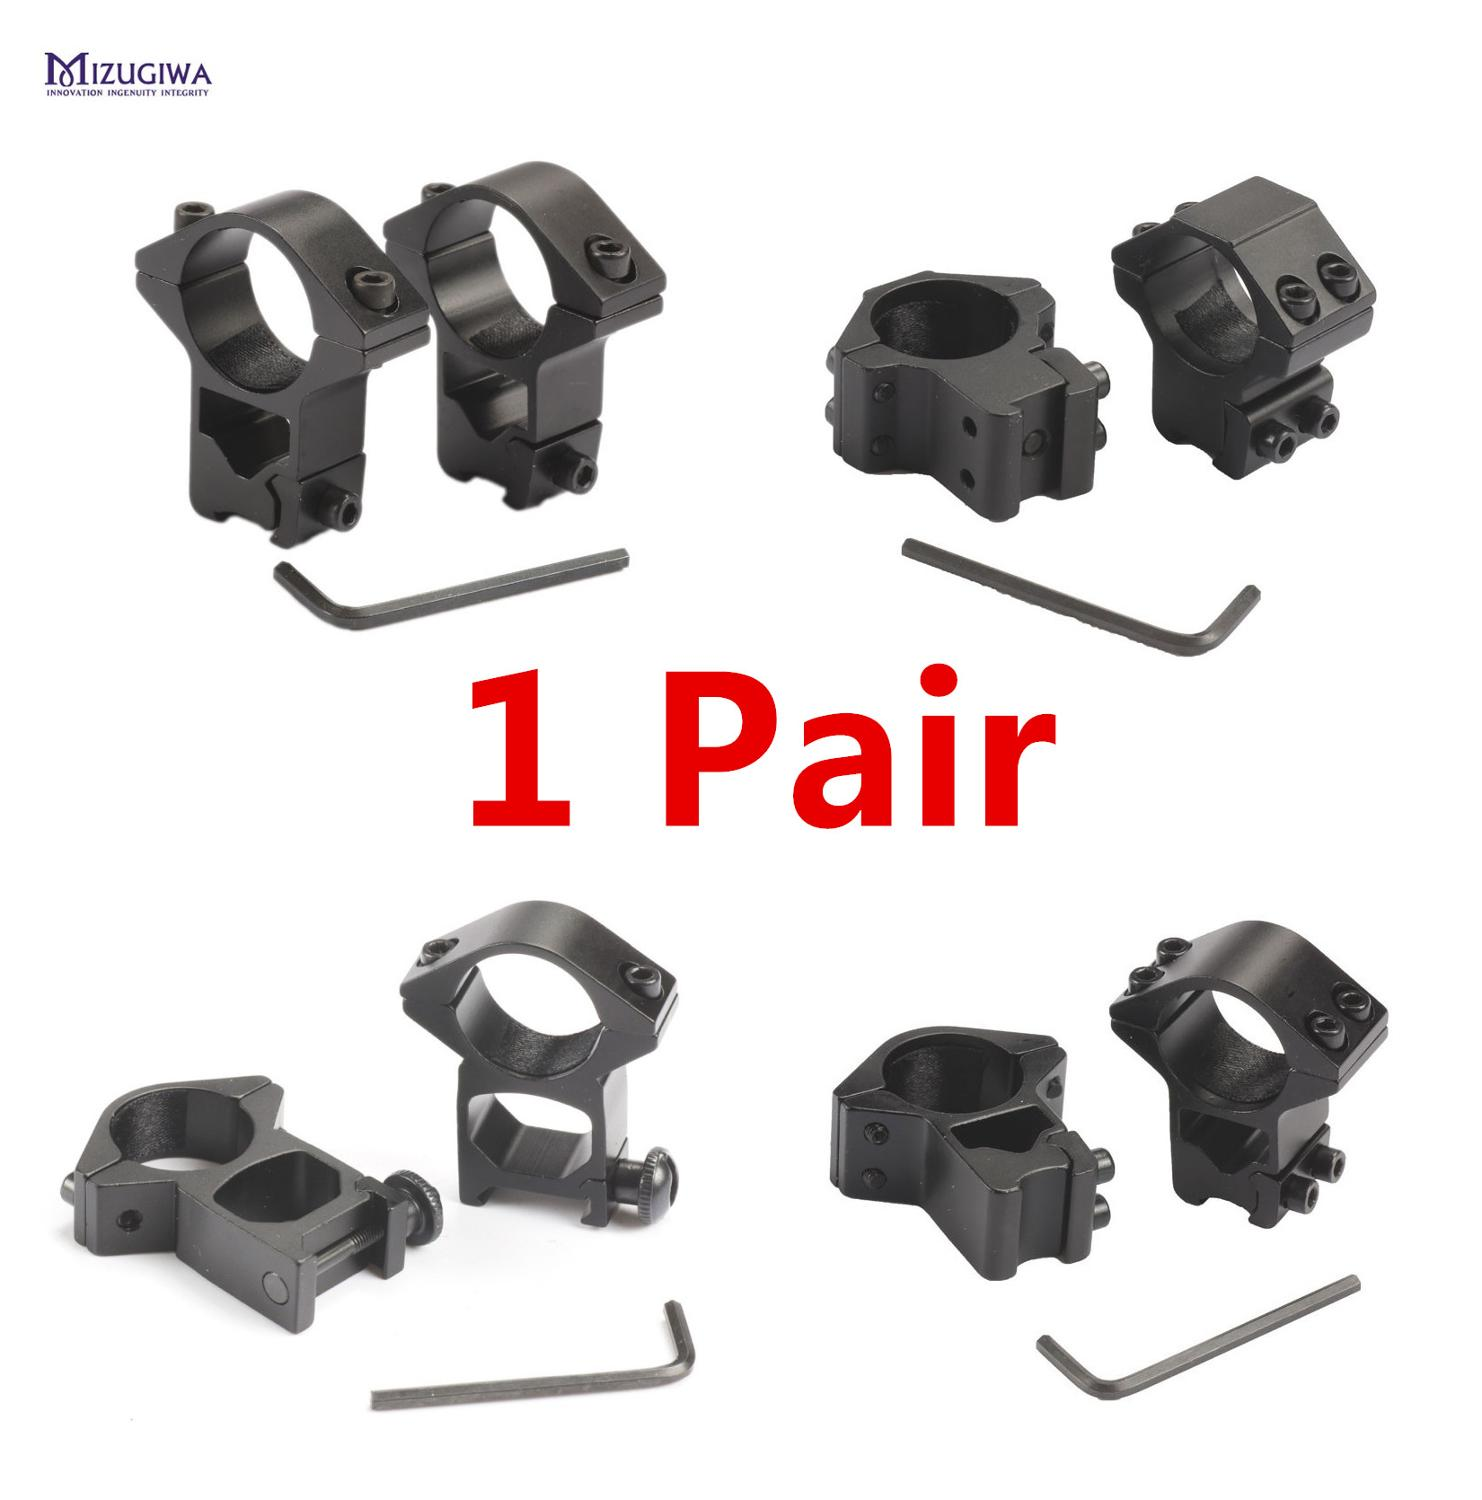 1 Pair MIZUGIWA Scope Mount Rings 25.4mm / 30mm Weaver 11mm / 20mm Picatinny Rail For Optics Sight Pistol Airsoft Accessories